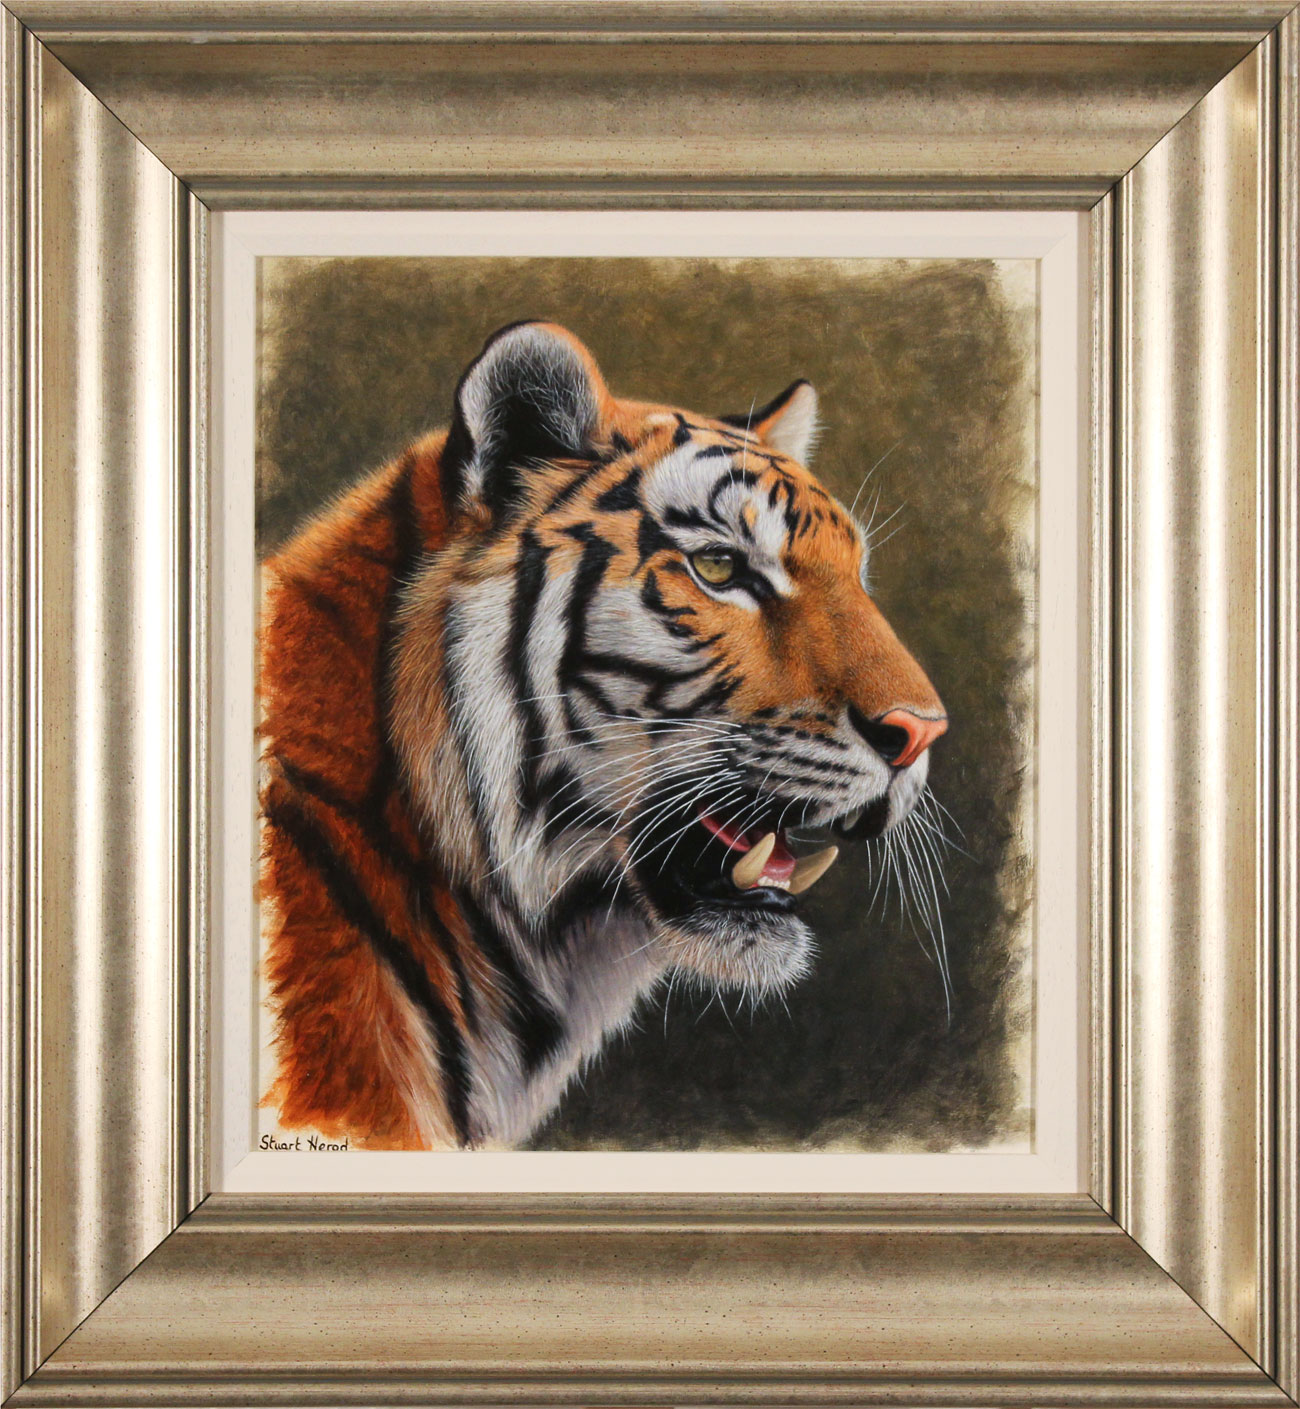 Stuart Herod, Original oil painting on panel, Tiger, click to enlarge